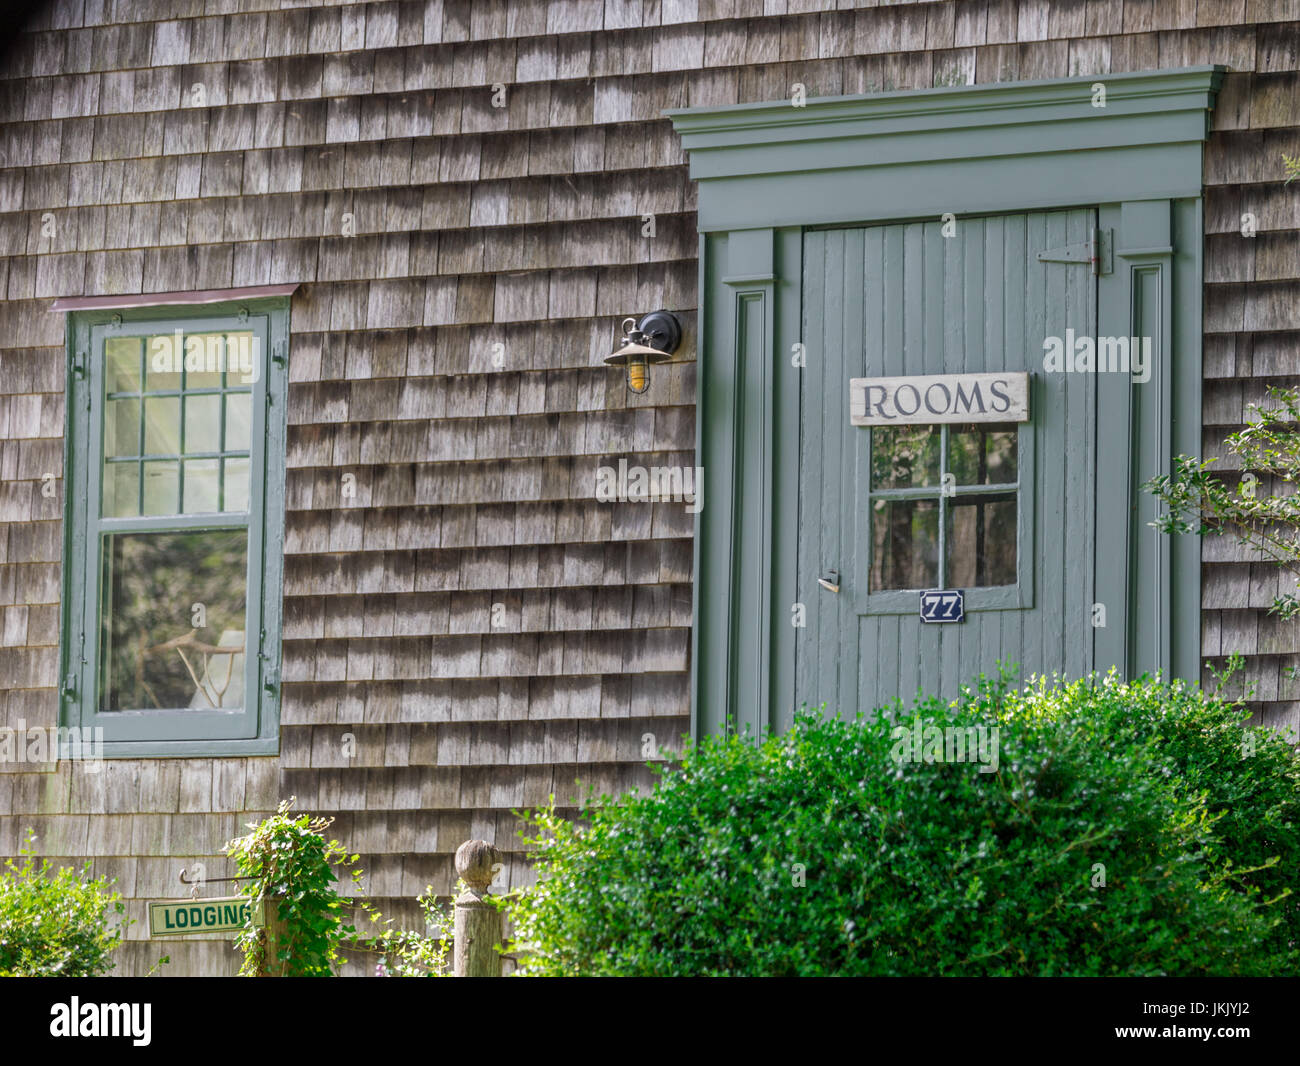 old home with a sign on the front door advertising rooms, lodging in East Hampton, NY - Stock Image